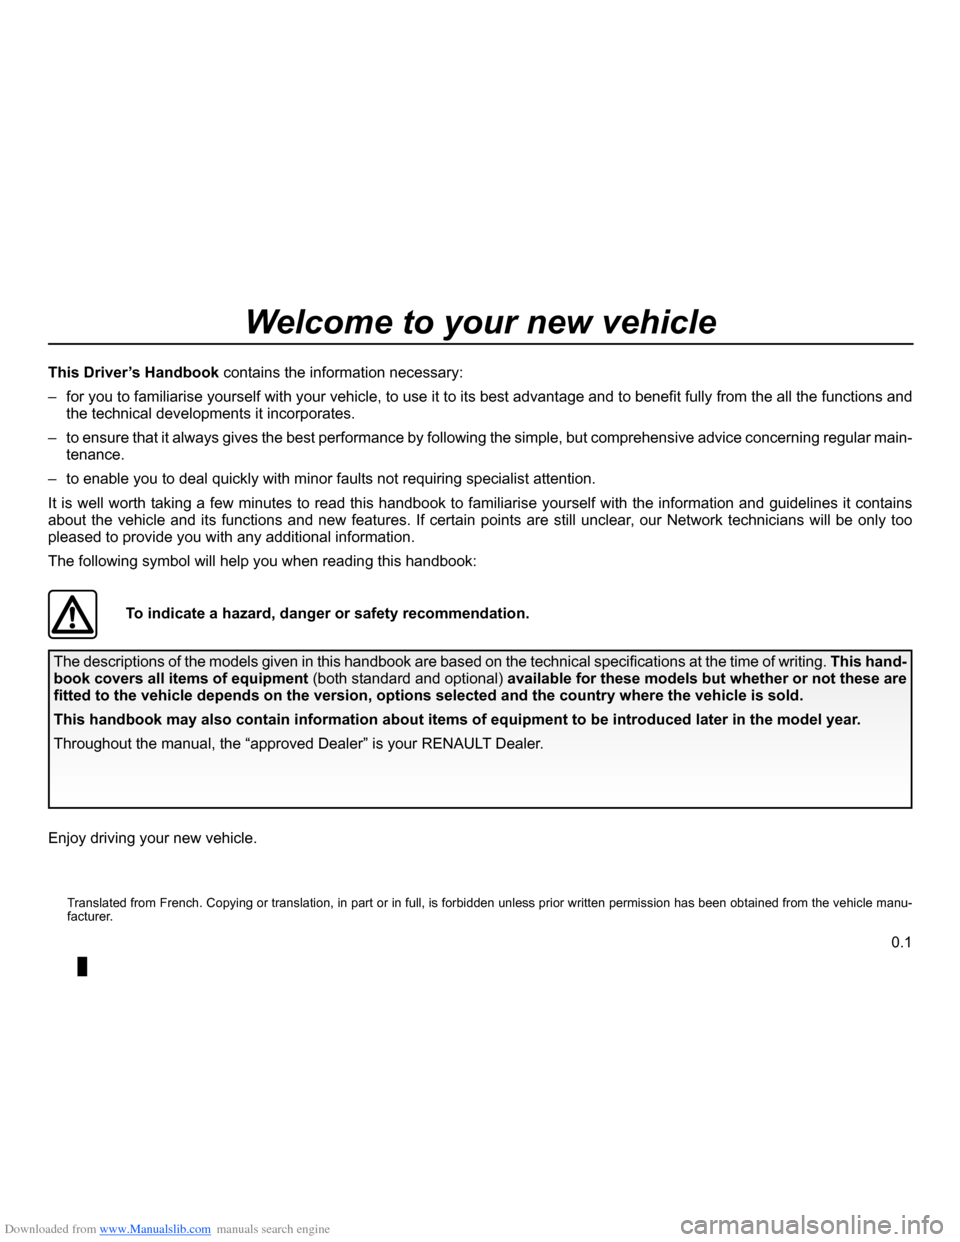 RENAULT CLIO 2012 X85 / 3.G Owners Manual, Page 3